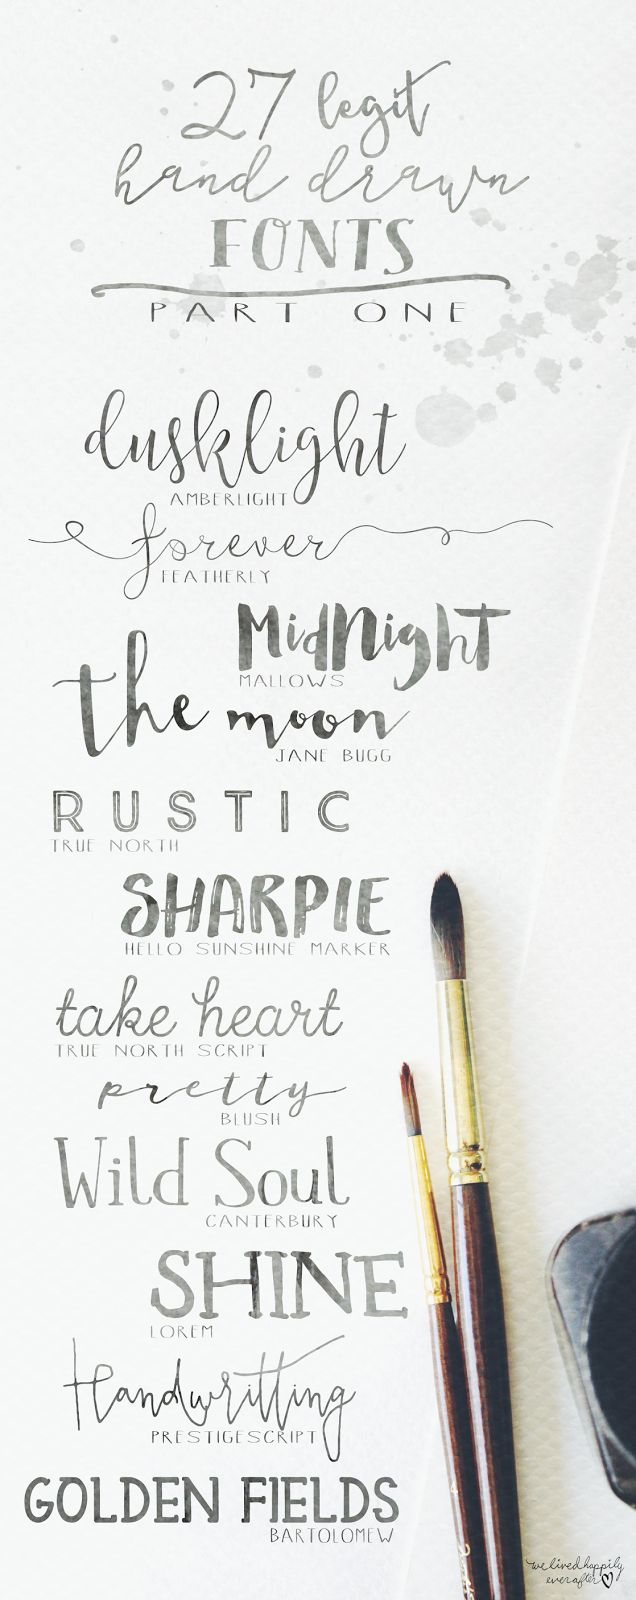 We Lived Happily Ever After: 27 Legit Hand Drawn Fonts | Part 1